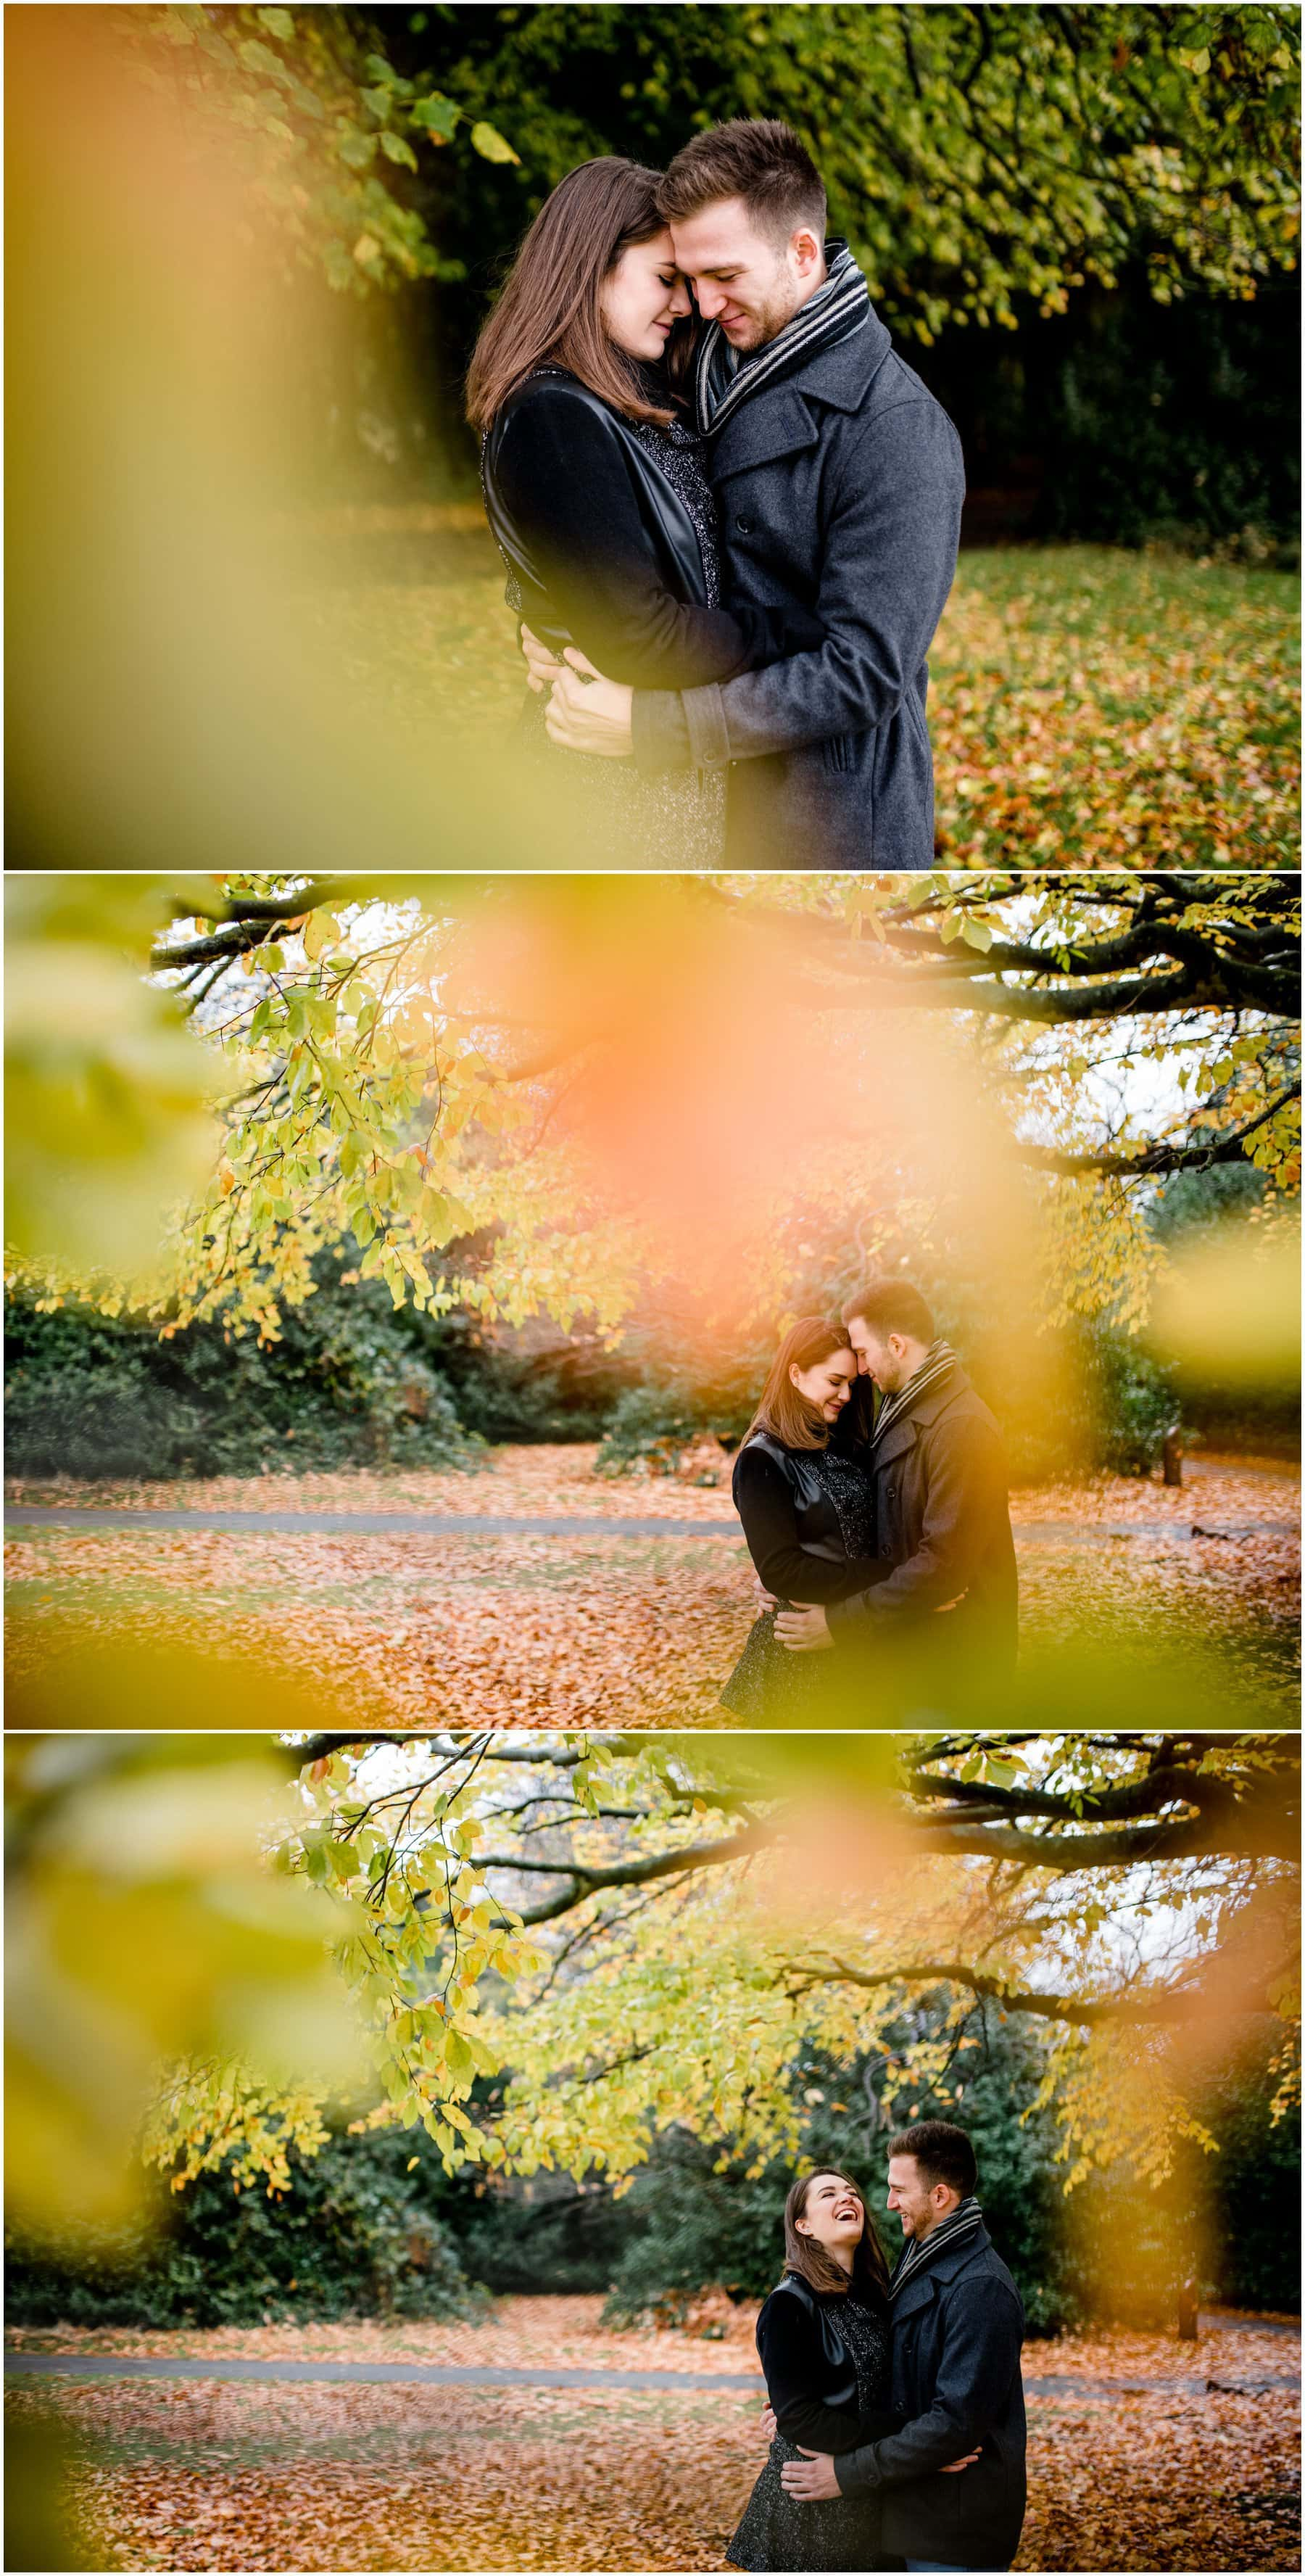 Sutton Coldfield Engagement Session with Lauren and Damien ahead of their wedding at Goldstone Hall, Market Drayton, photos by West Midlands Wedding Photographer Lisa Carpenter Photography.